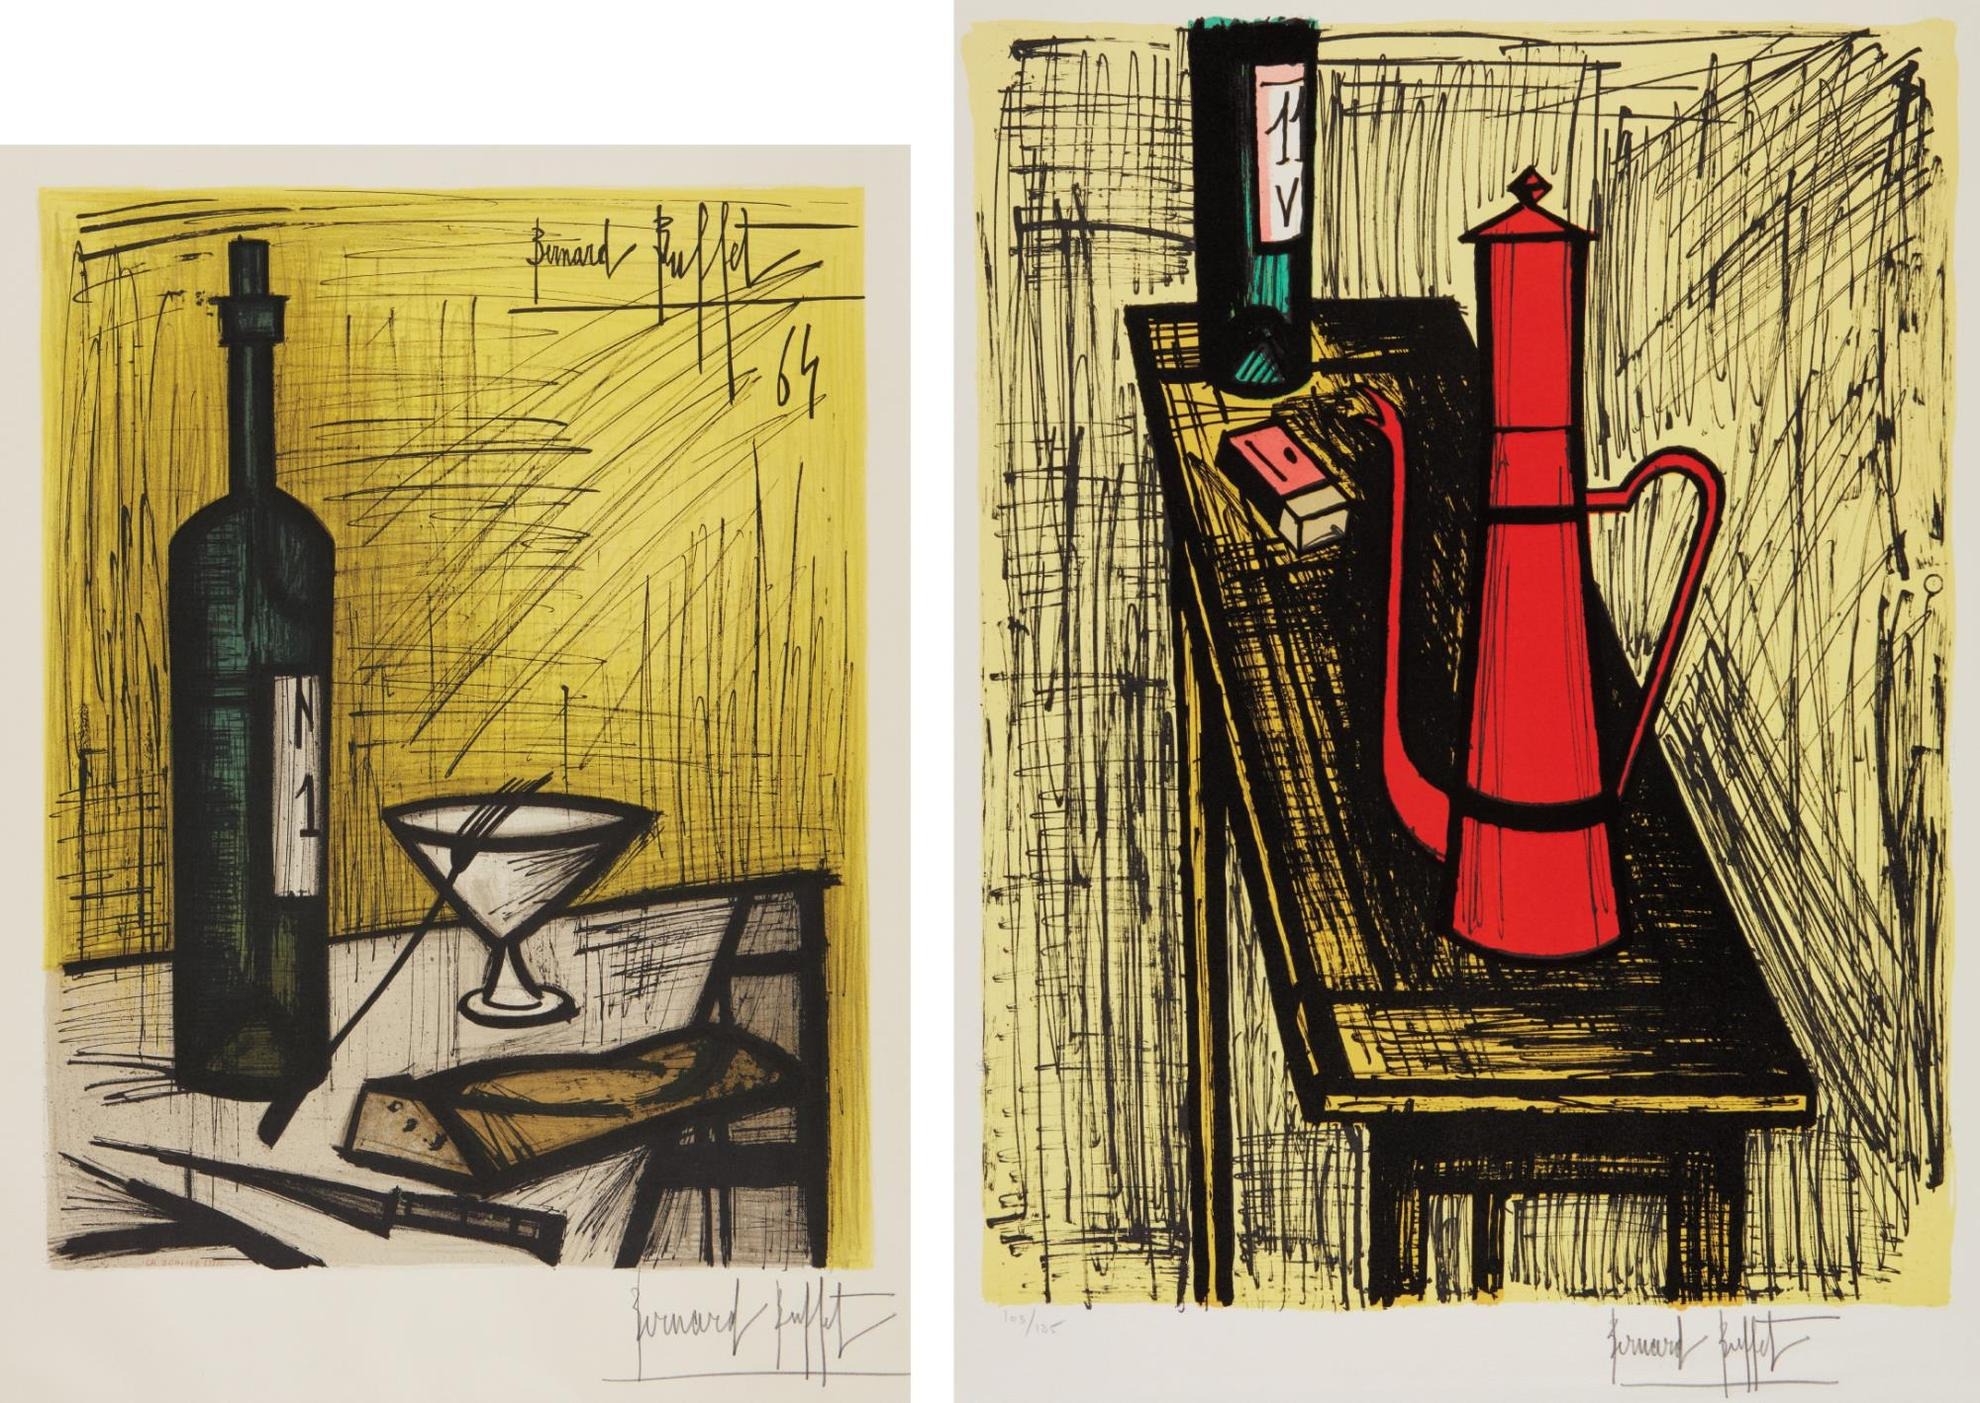 Bernard Buffet-Affiche D'exposition - Le Pain Et Le Vin (Bread And Wine), By Charles Sorlier; And La Cafetiere Rouge (The Red Coffee-Maker)-1982